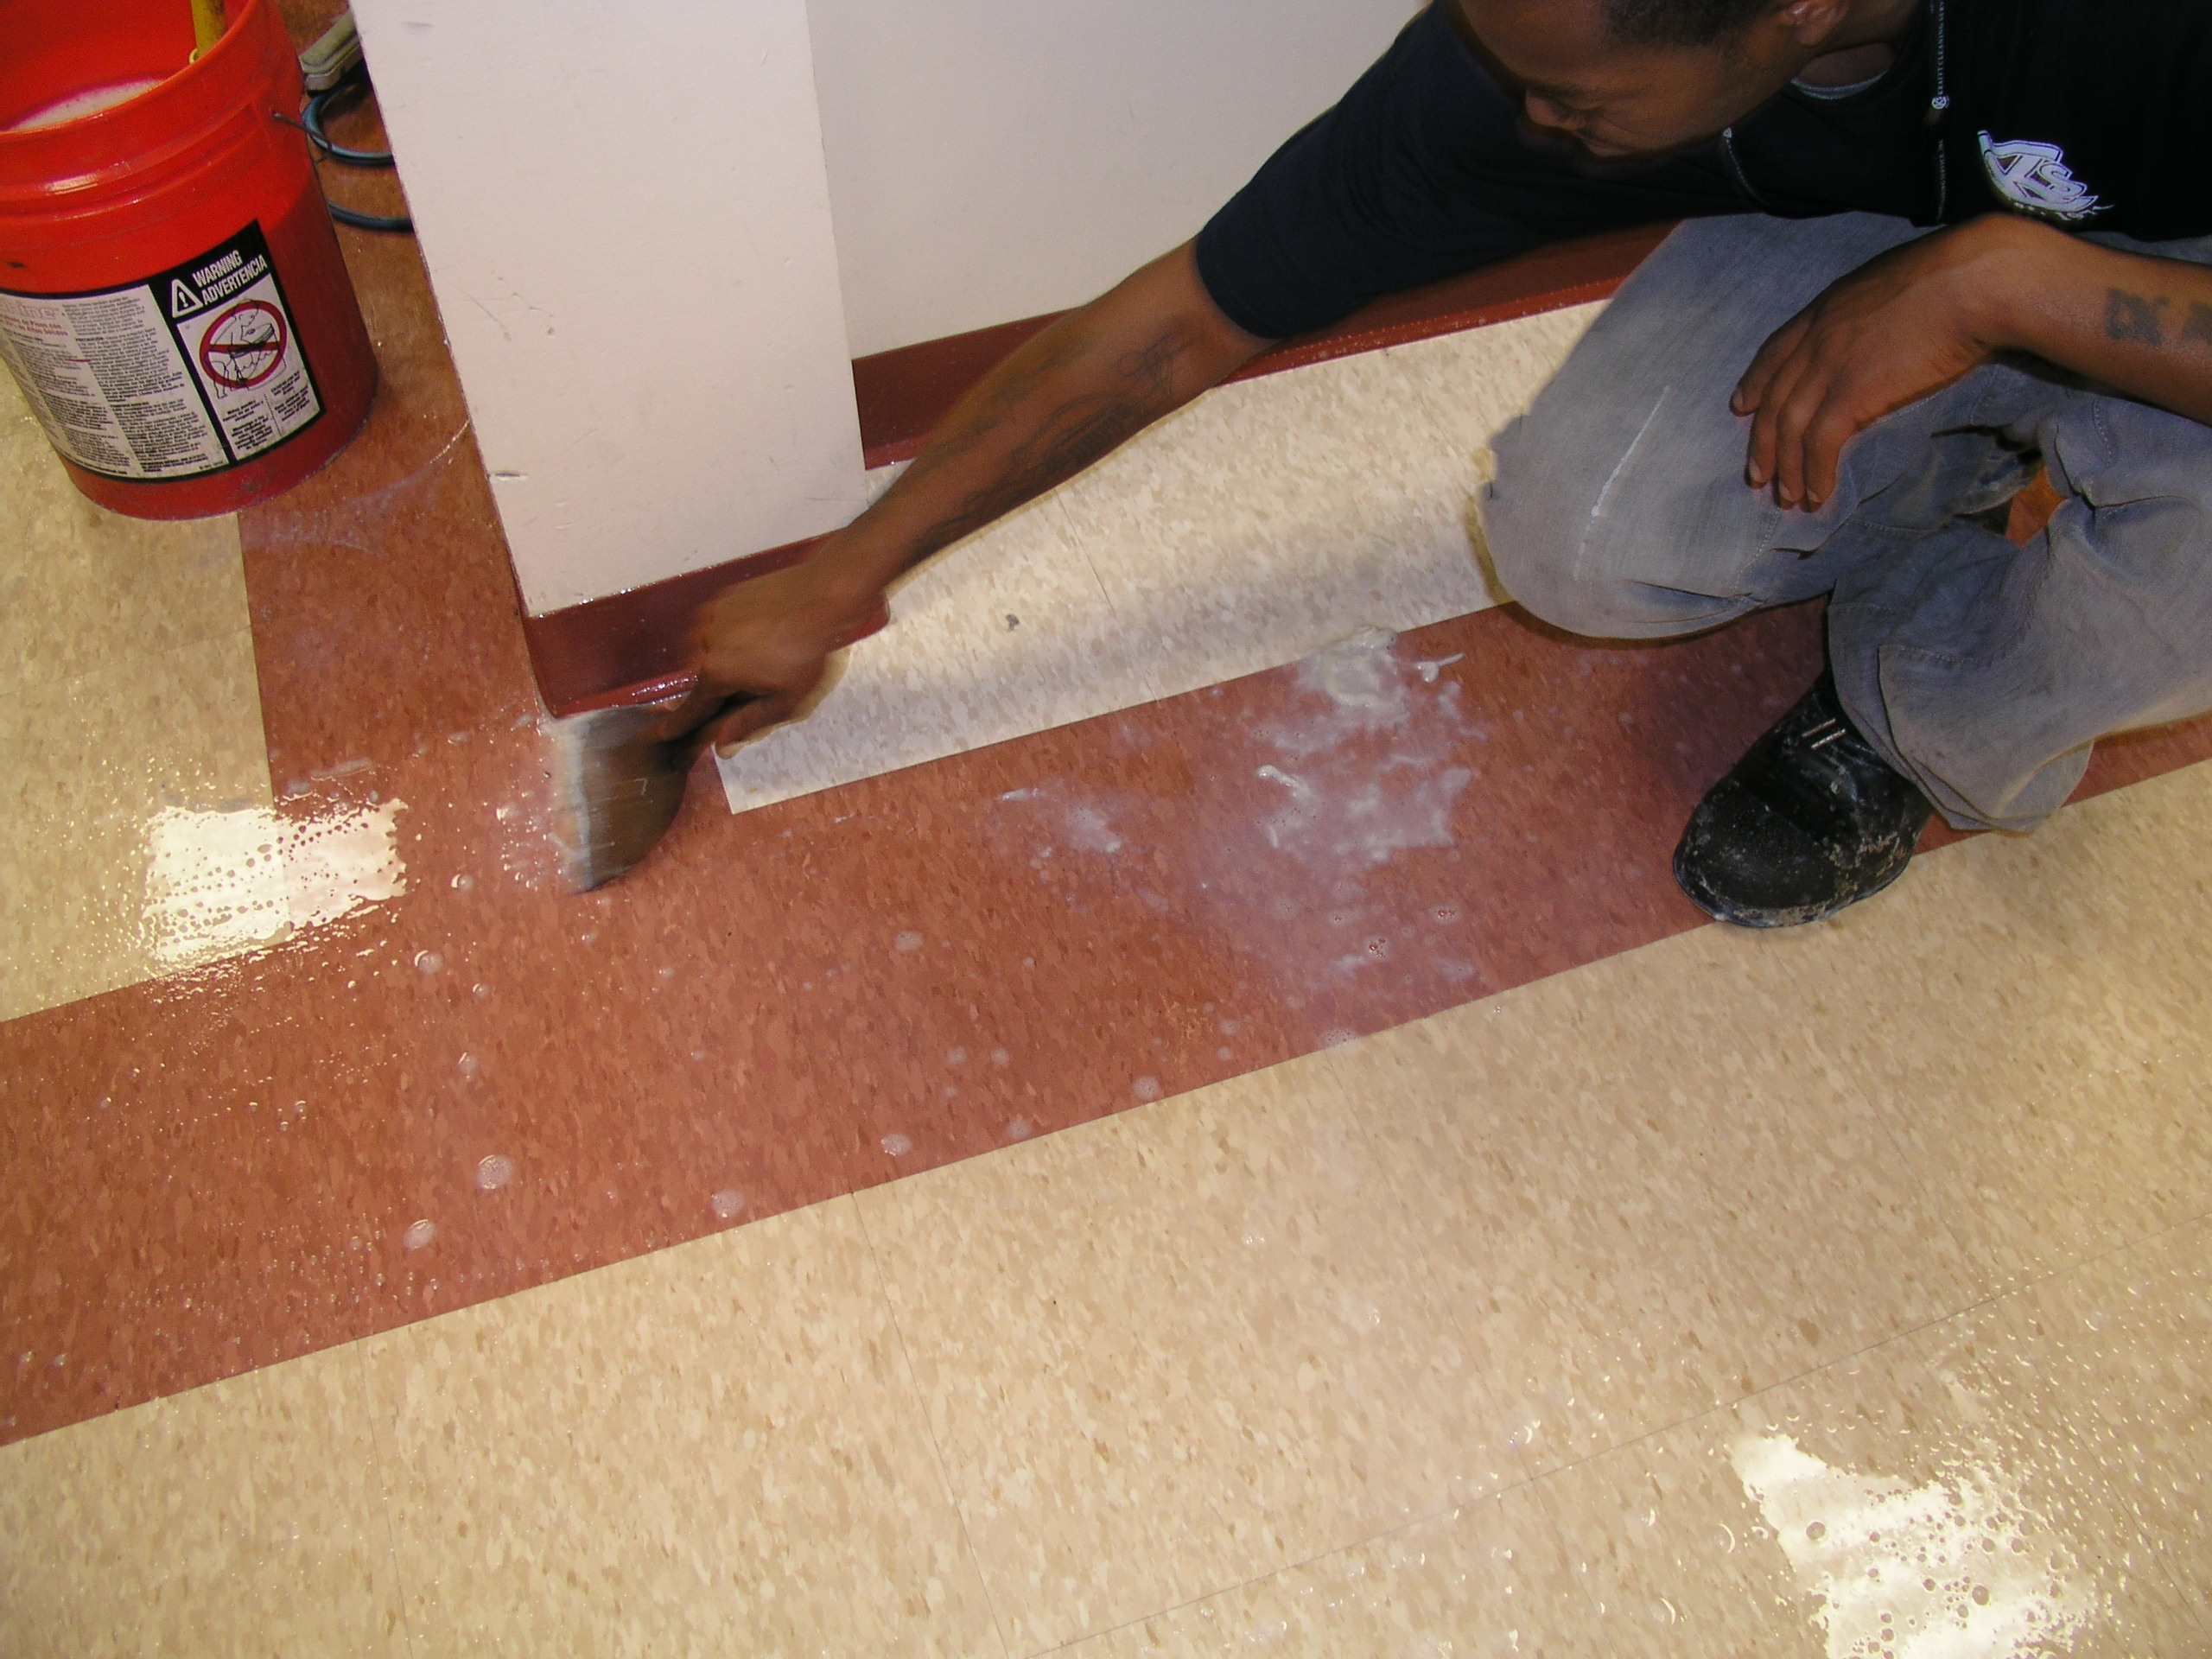 floor tile stripping and refinishing | krafft cleaning service, inc.